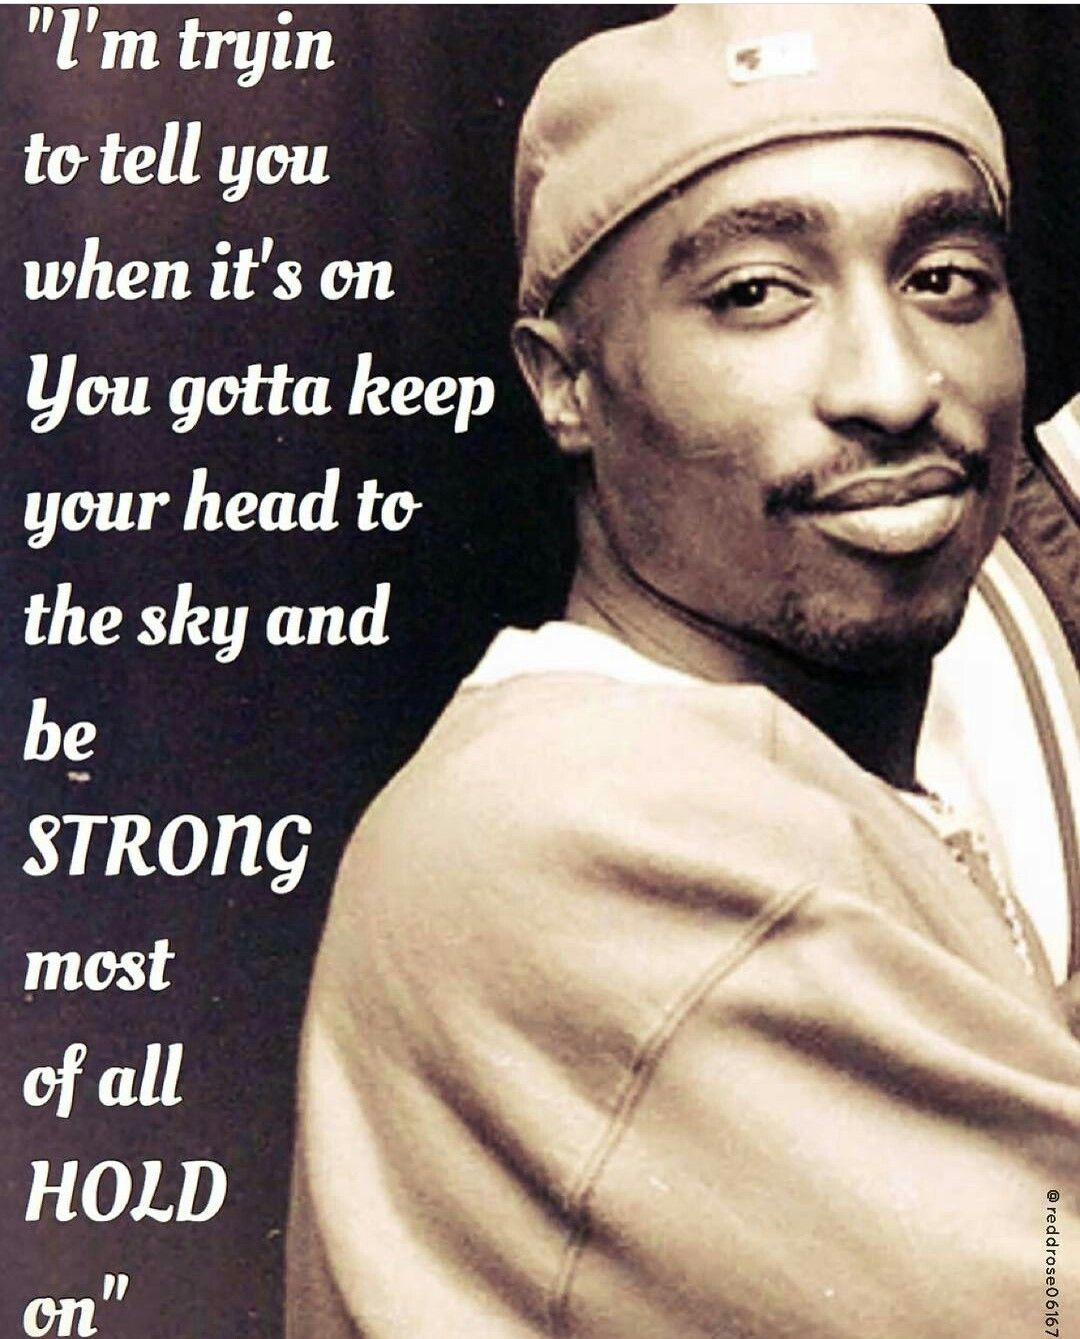 2pac quotes · Smiling through the scars on his face